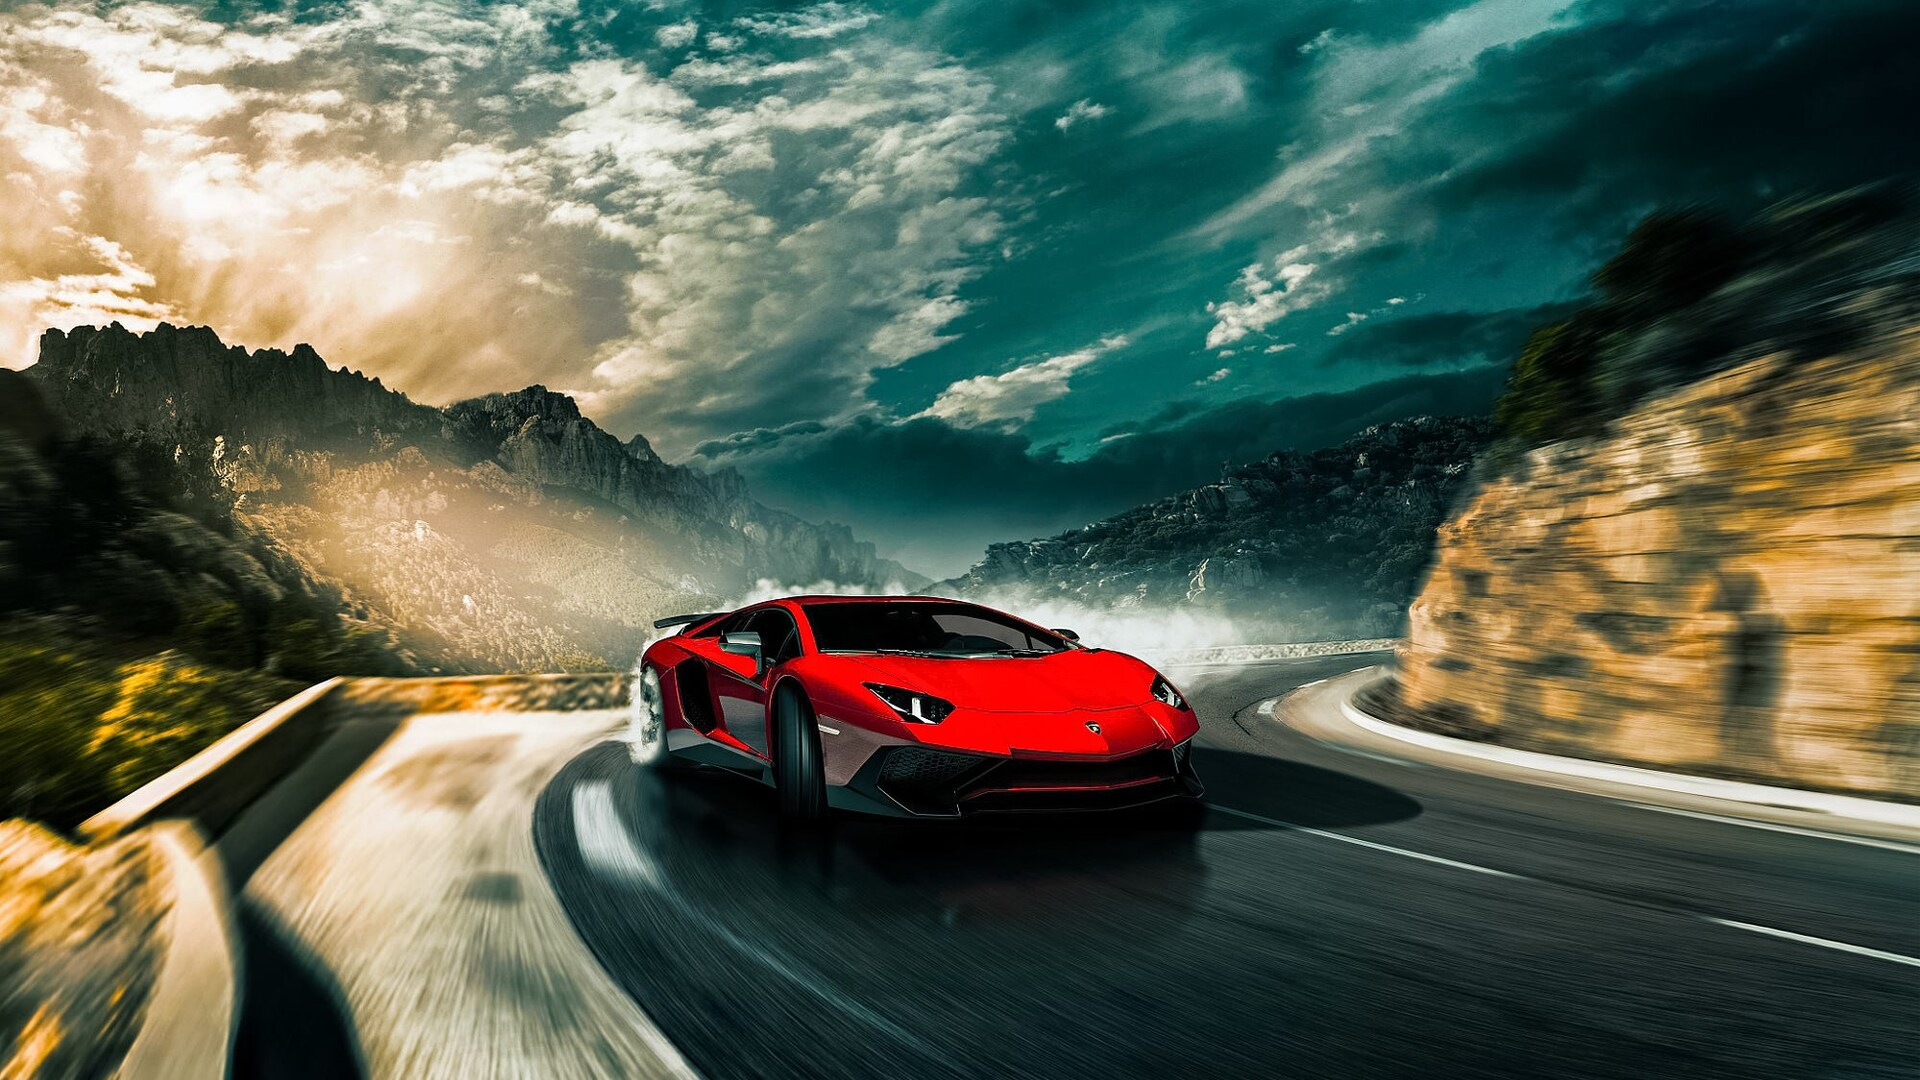 1920x1080 Lamborghini Aventador Sv Drifting Laptop Full Hd 1080p Hd 4k Wallpapers Images Backgrounds Photos And Pictures